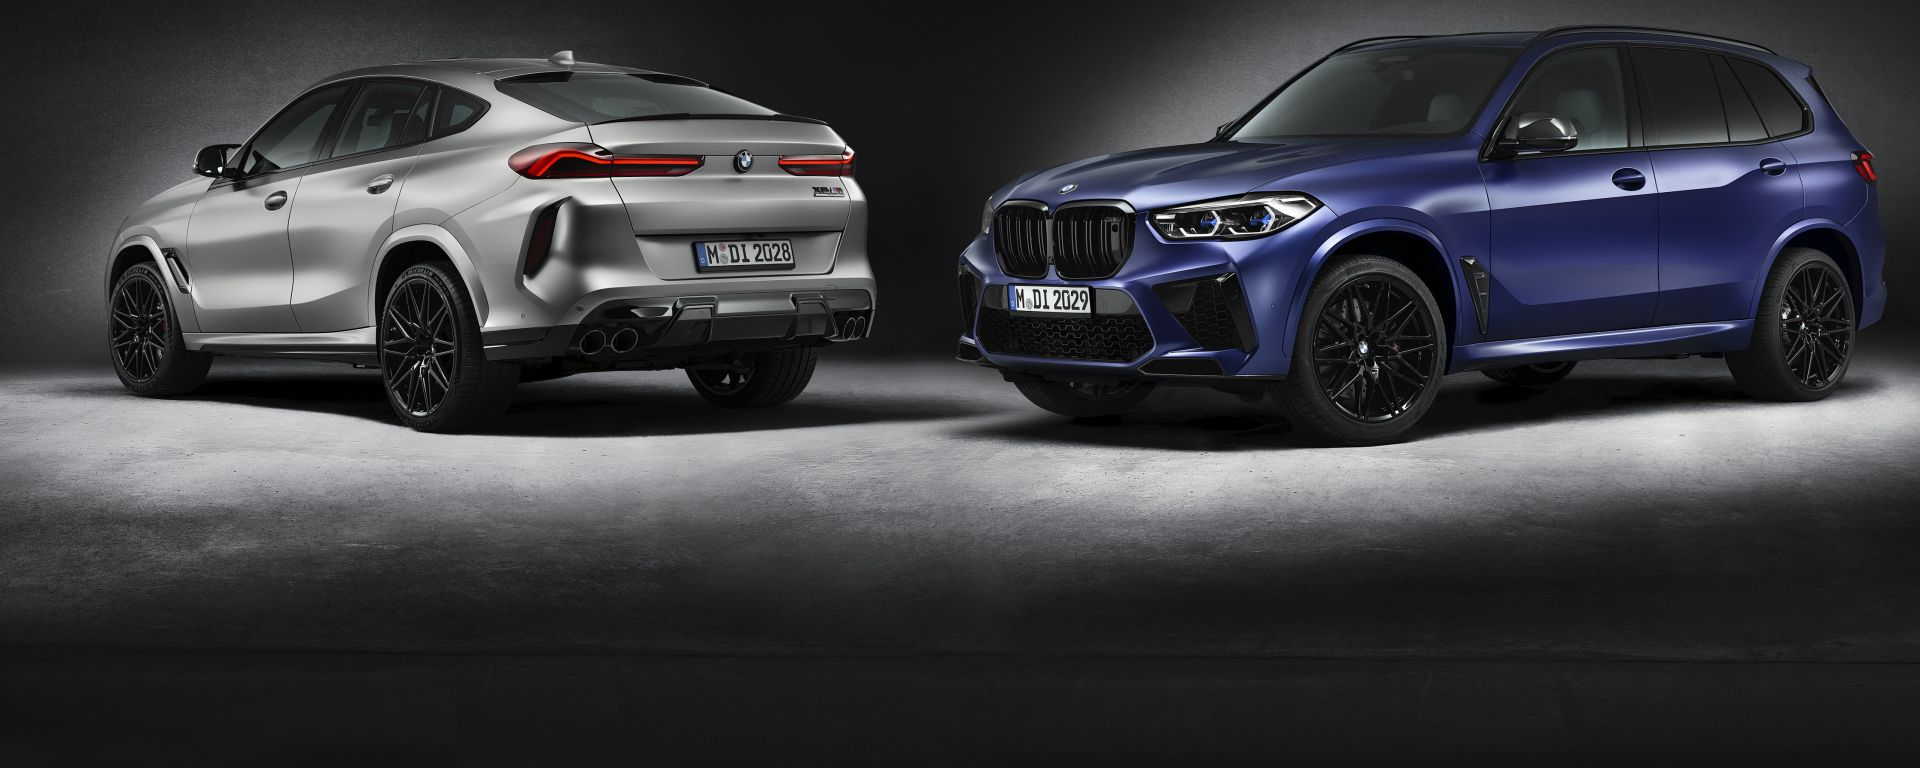 Nuove BMW X5 e X6 M Competition First Edition